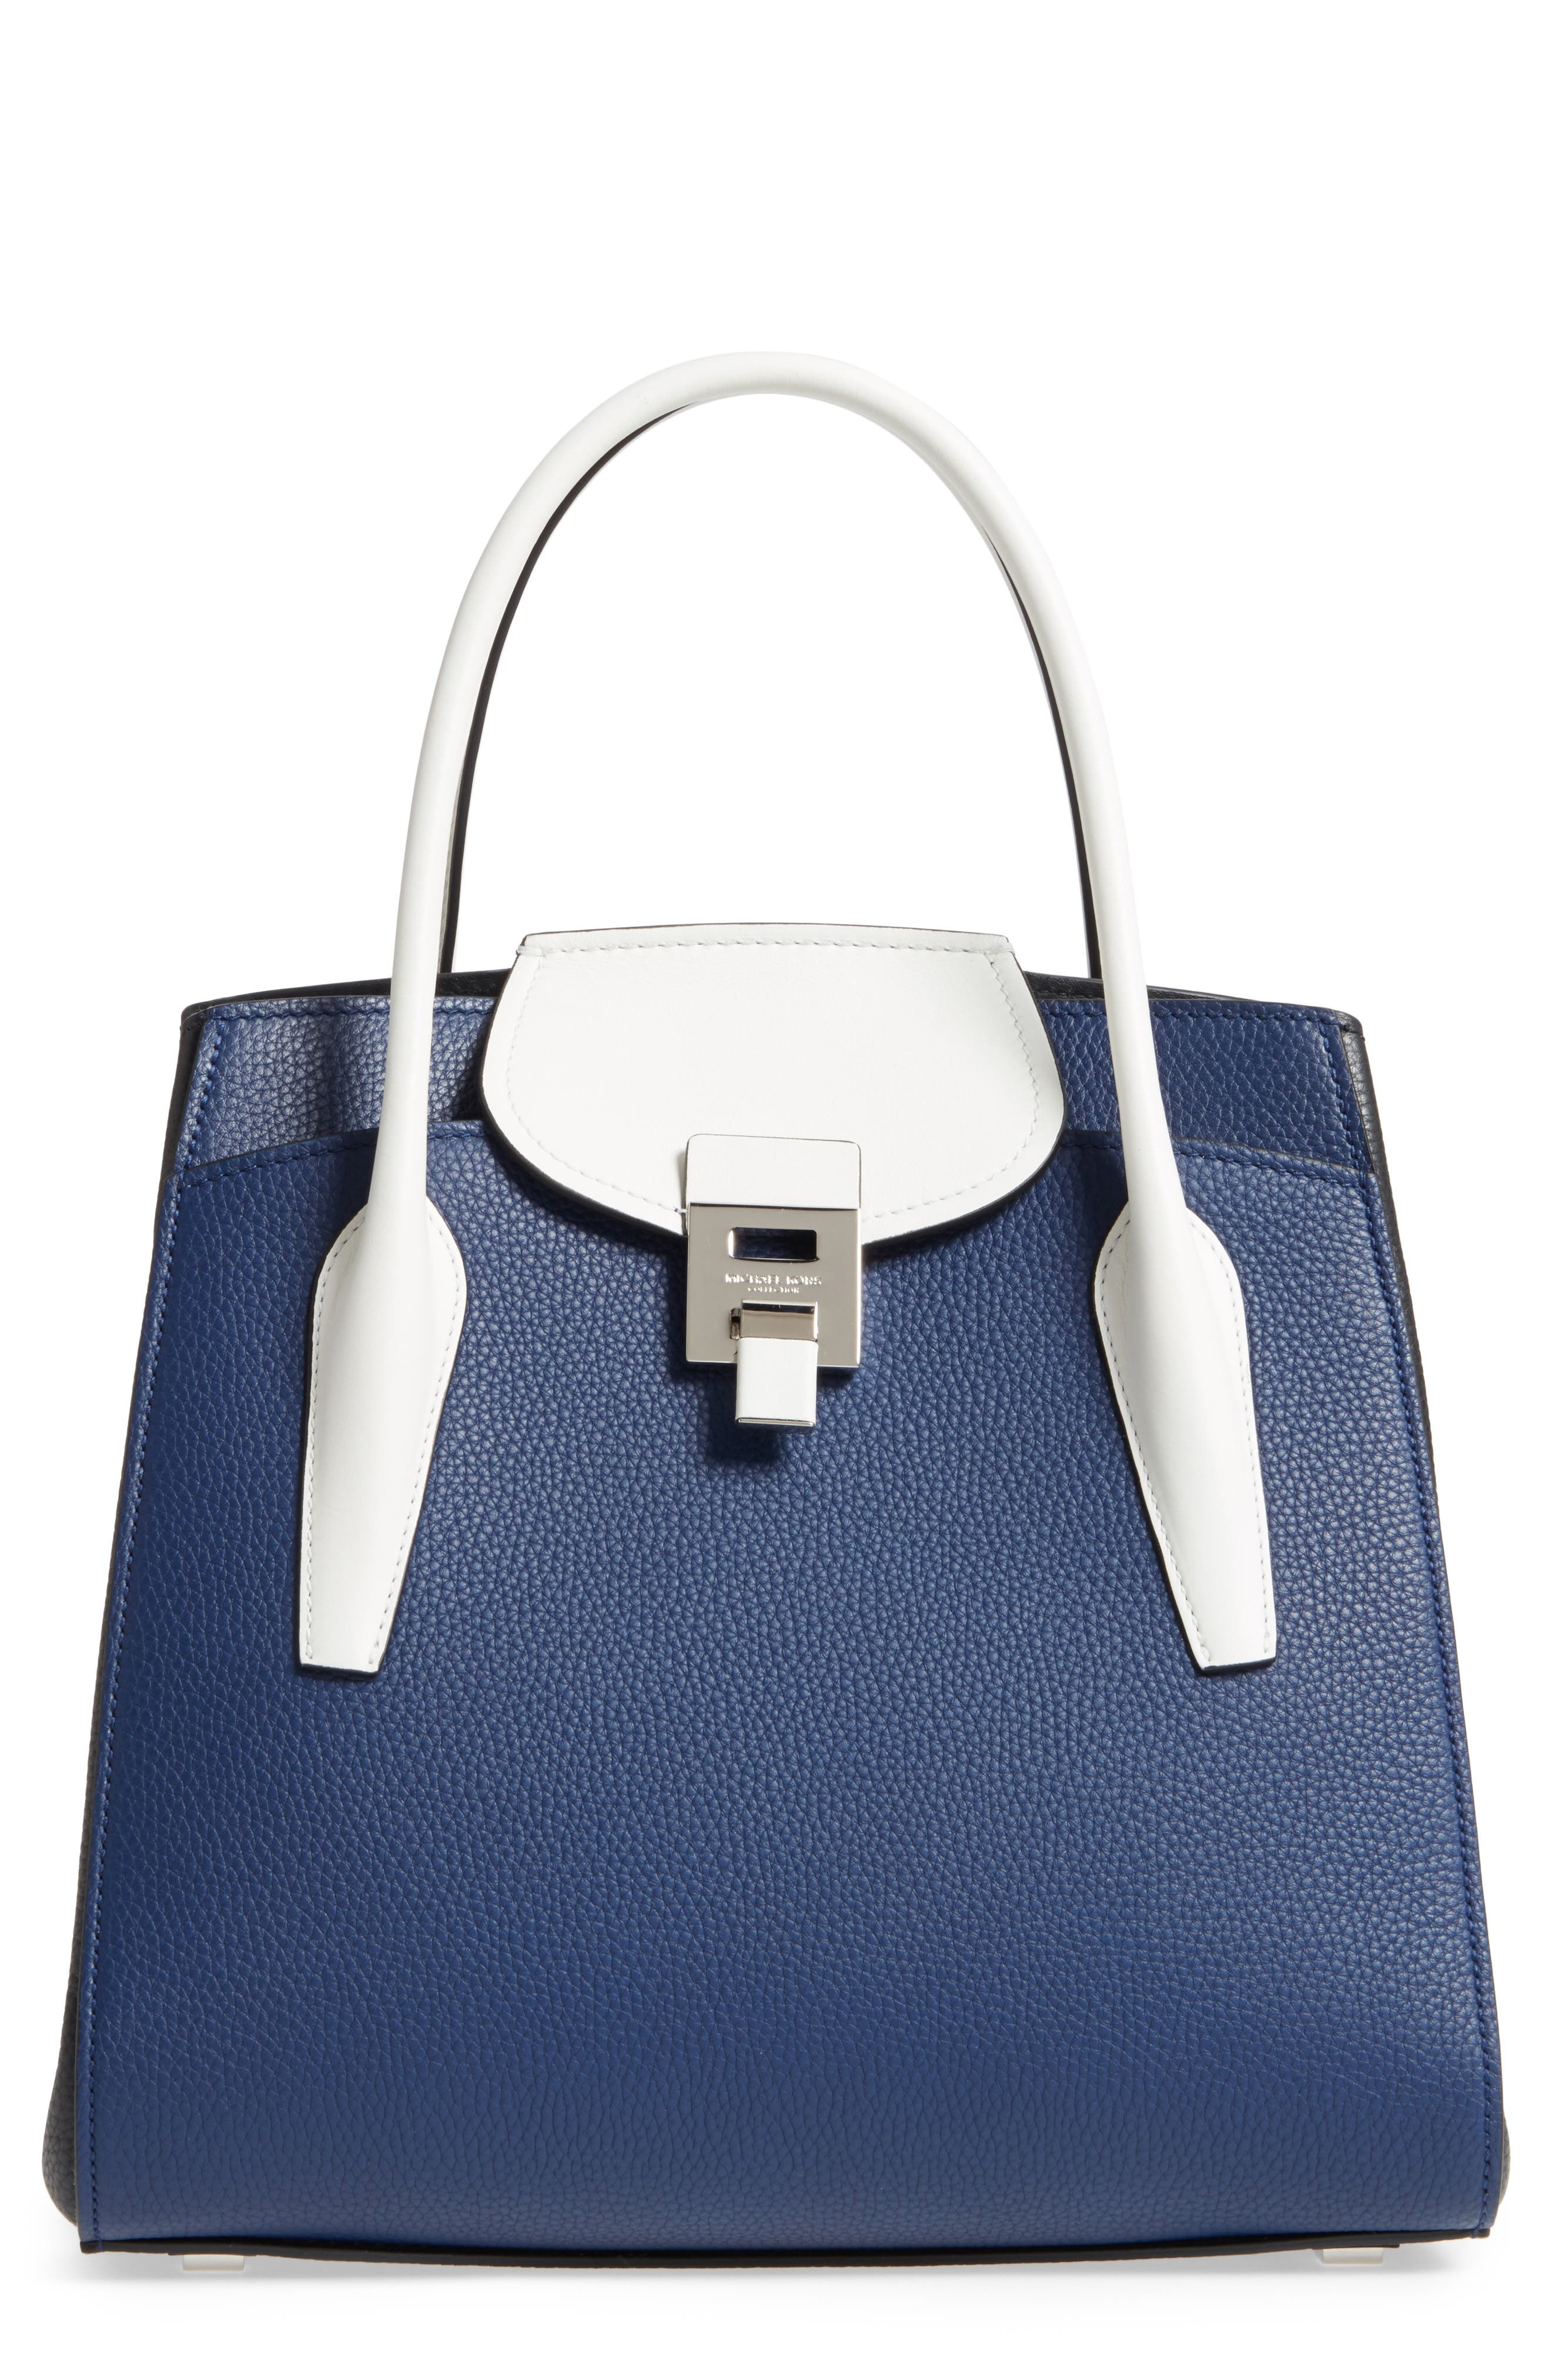 Alternate Image 1 Selected - Michael Kors Large Bancroft Leather Satchel